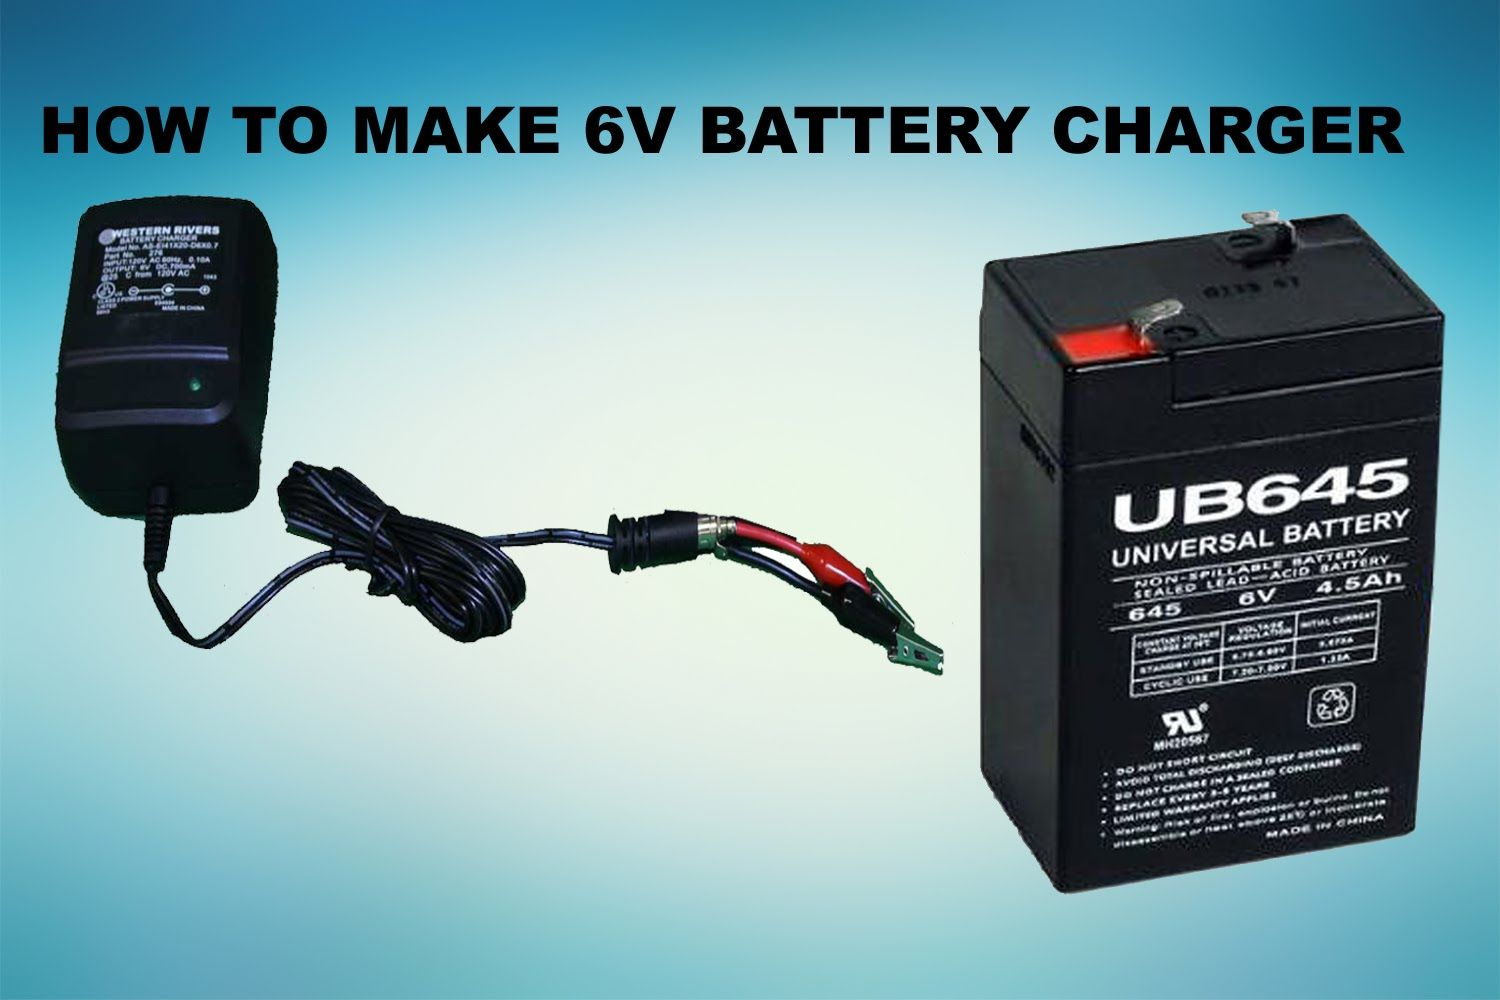 How To Make 6v Battery Charger Battery Charger Circuit Charger Battery Charger